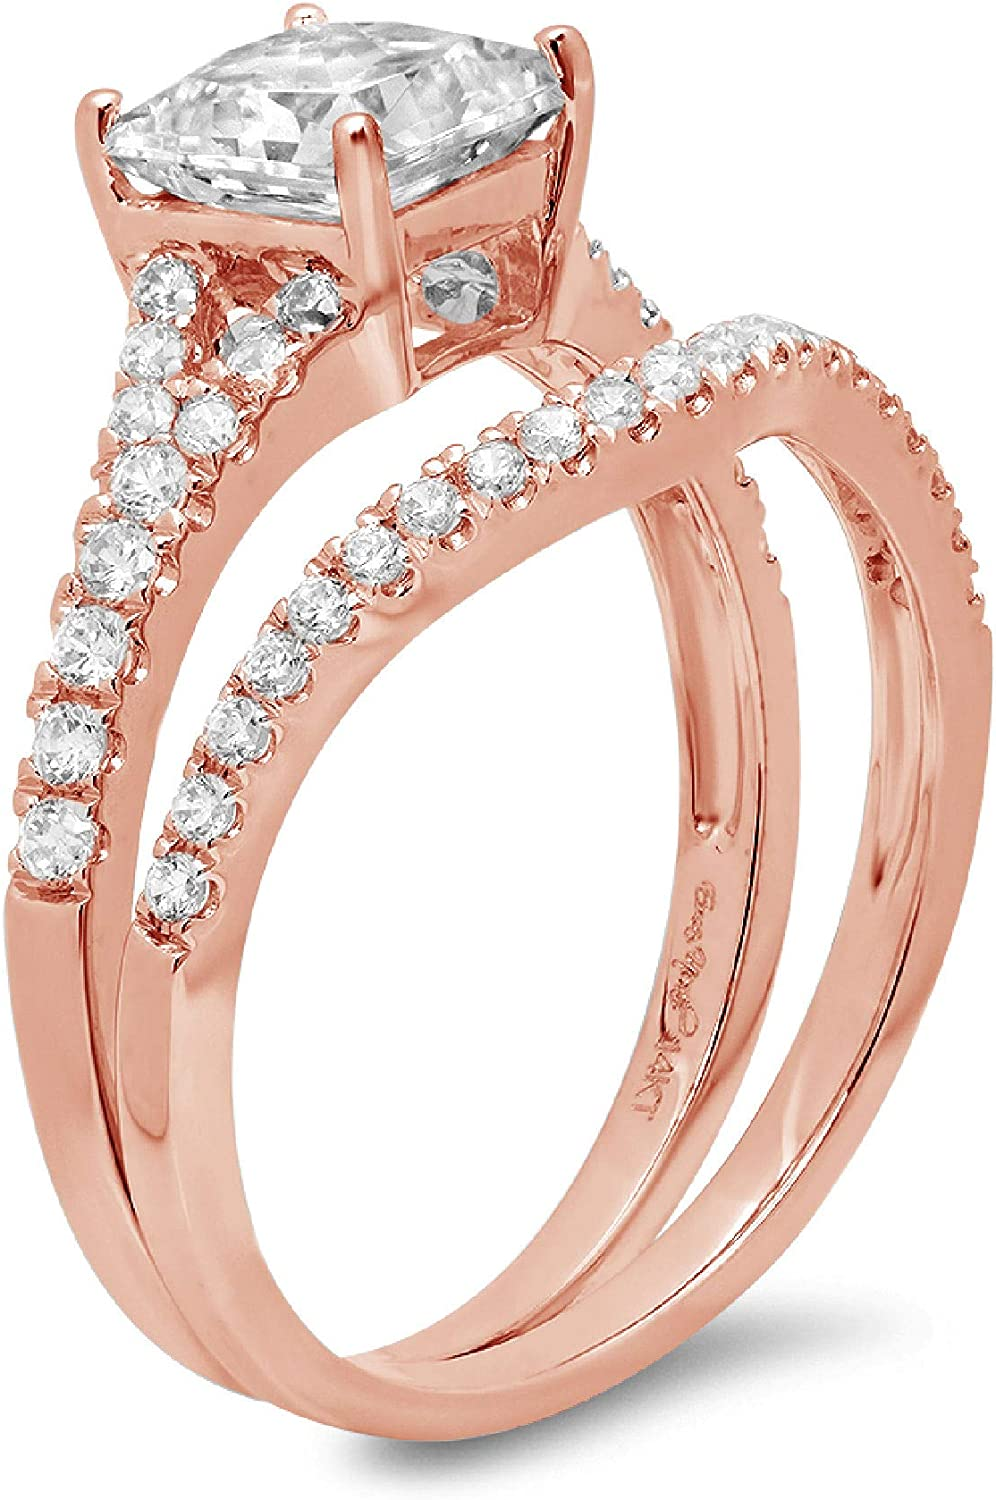 2.01ct Princess Cut Pave Solitaire with Accent Genuine Moissanite & Simulated Diamond Engagement Promise Statement Anniversary Bridal Wedding Ring Band set Curved Solid 14k Rose Gold